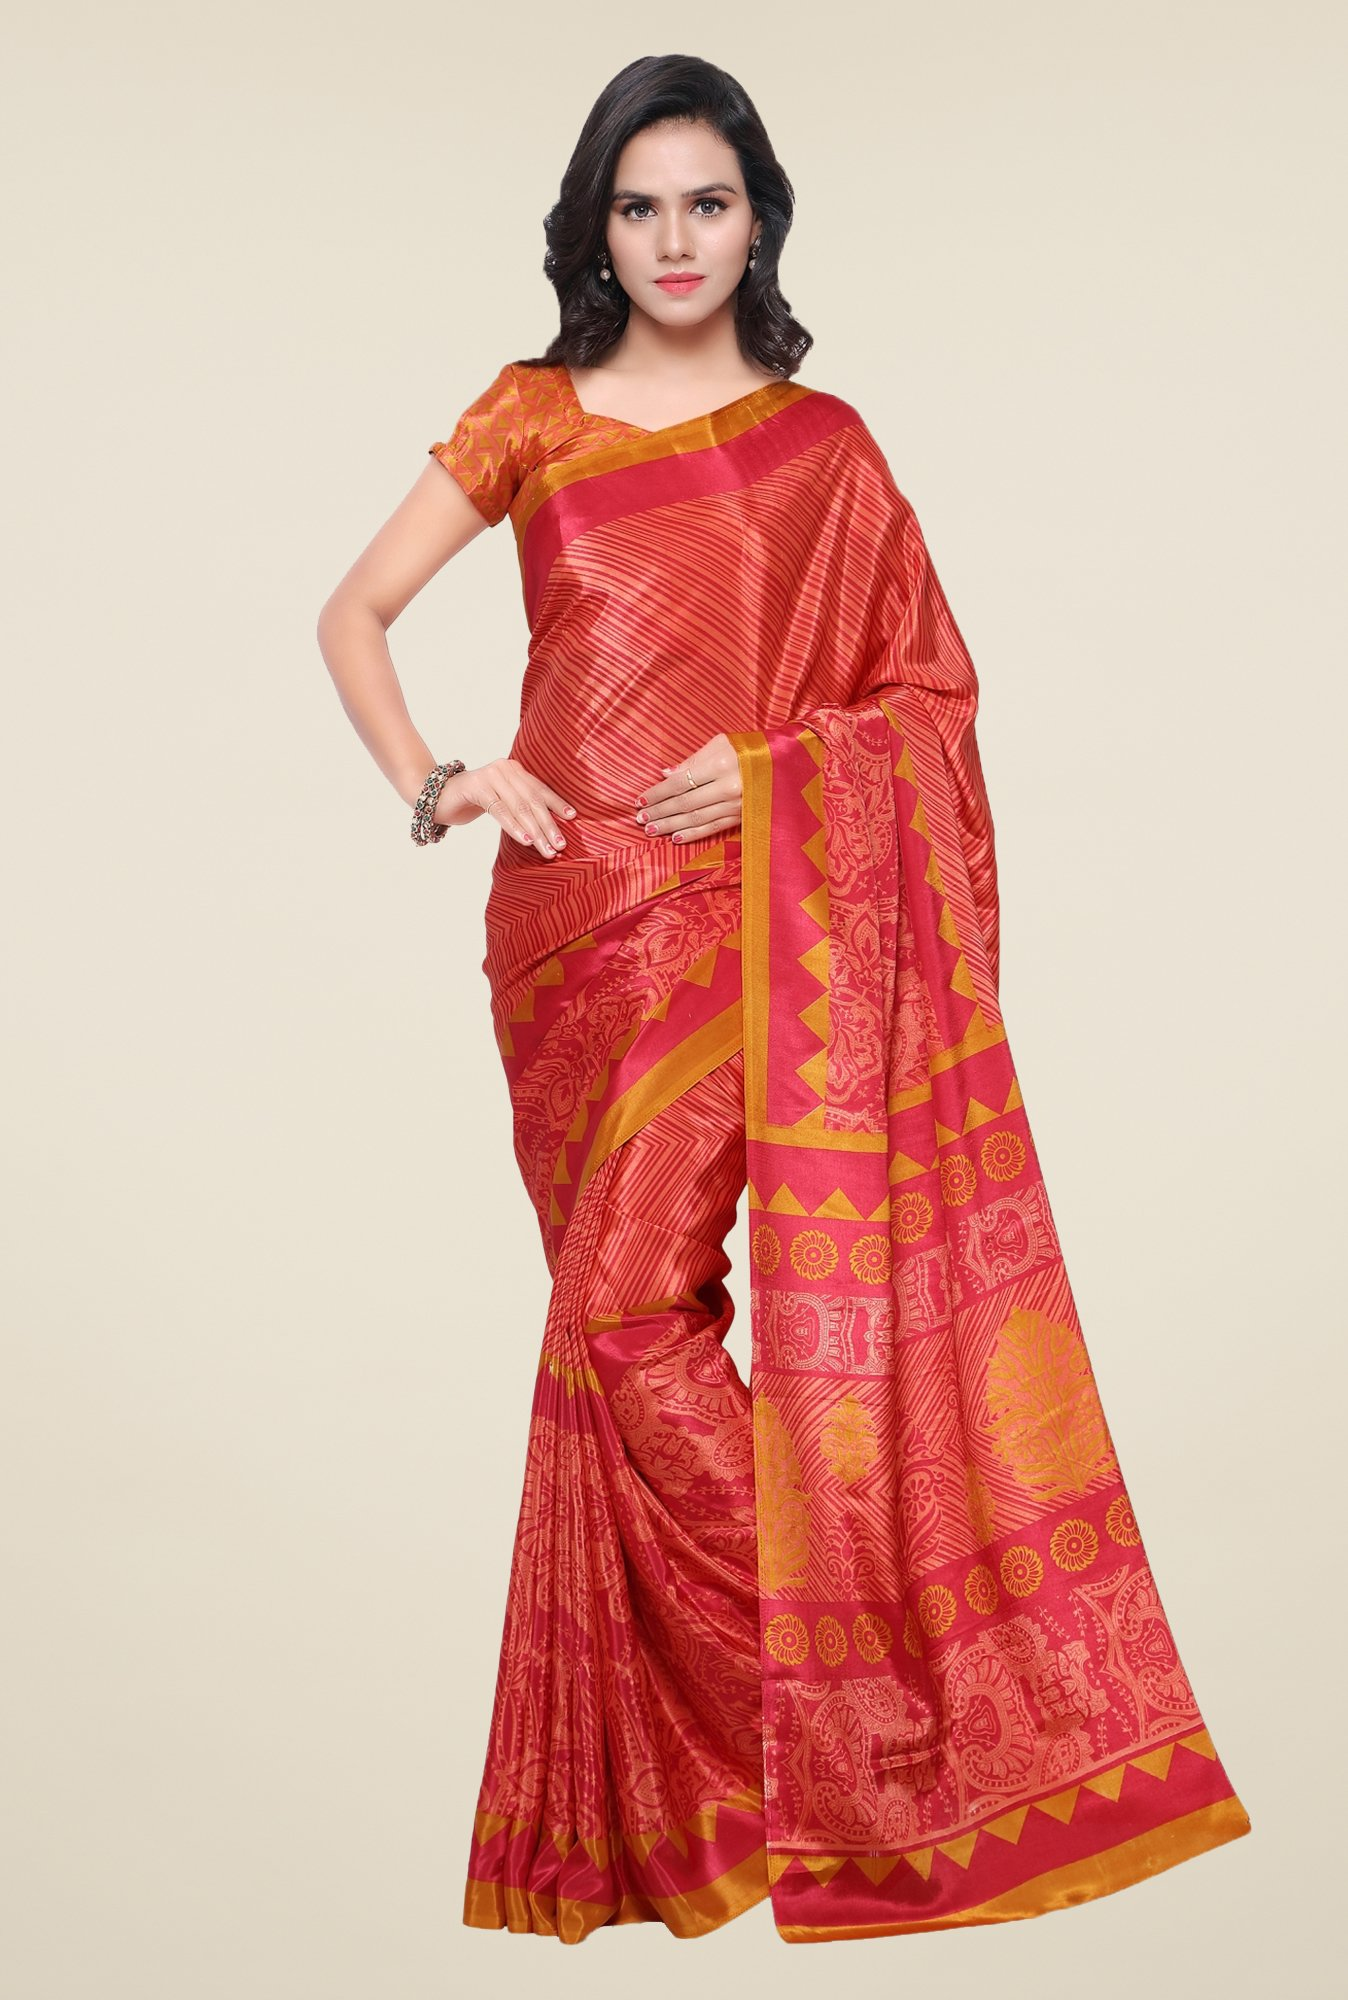 Triveni Red Printed Crape Saree